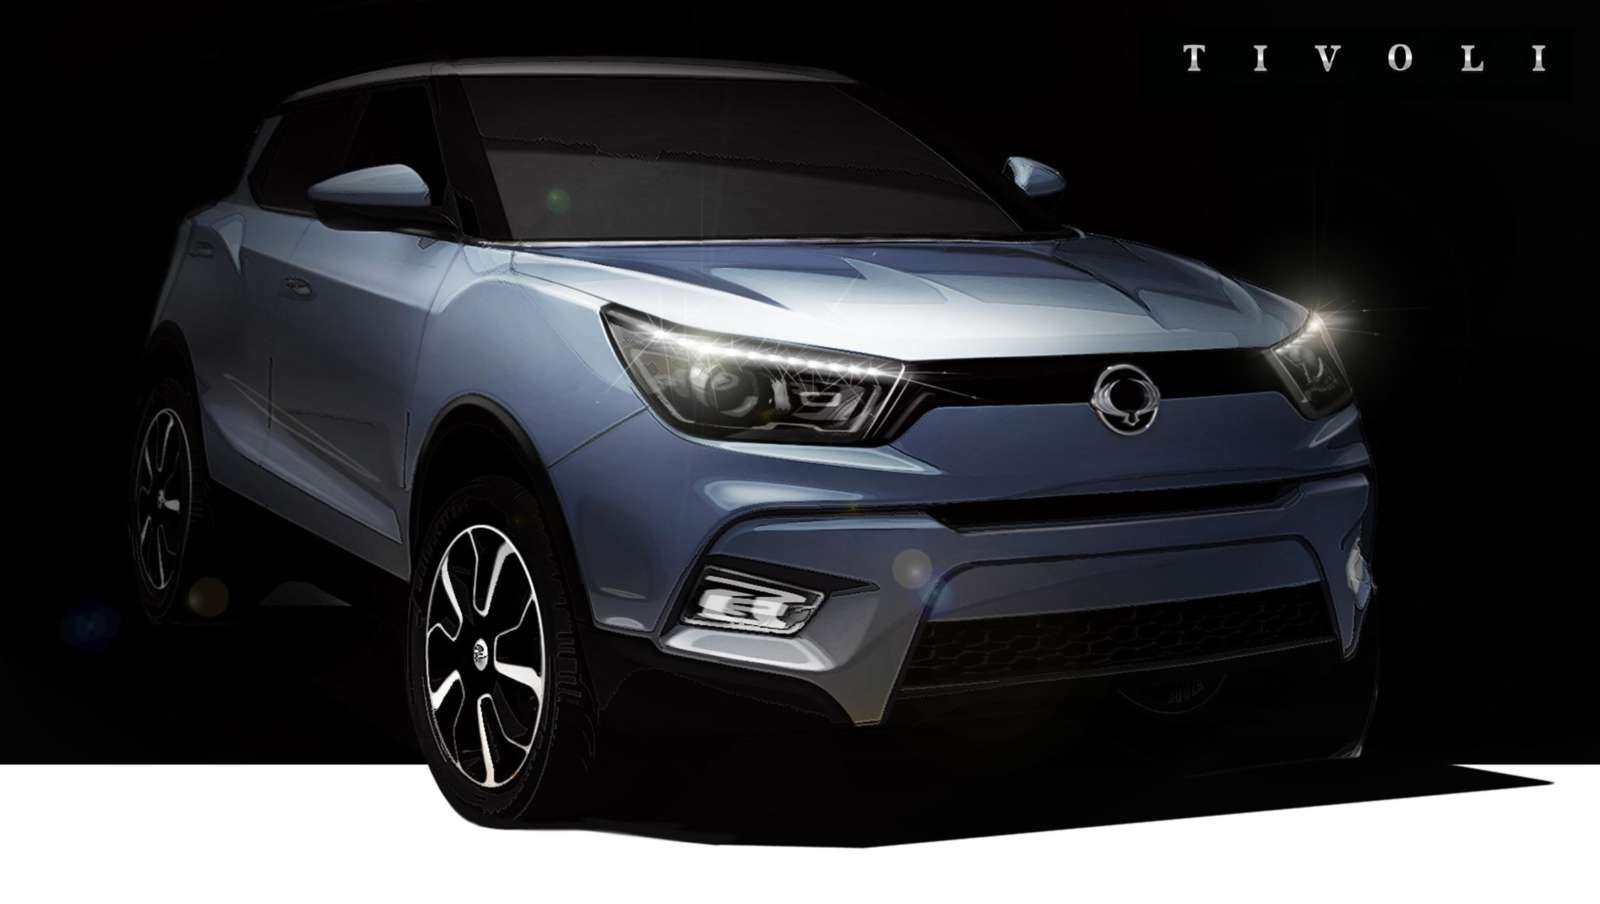 ssangyong tivoli compact suv x100 teased india launch next year motoroids. Black Bedroom Furniture Sets. Home Design Ideas